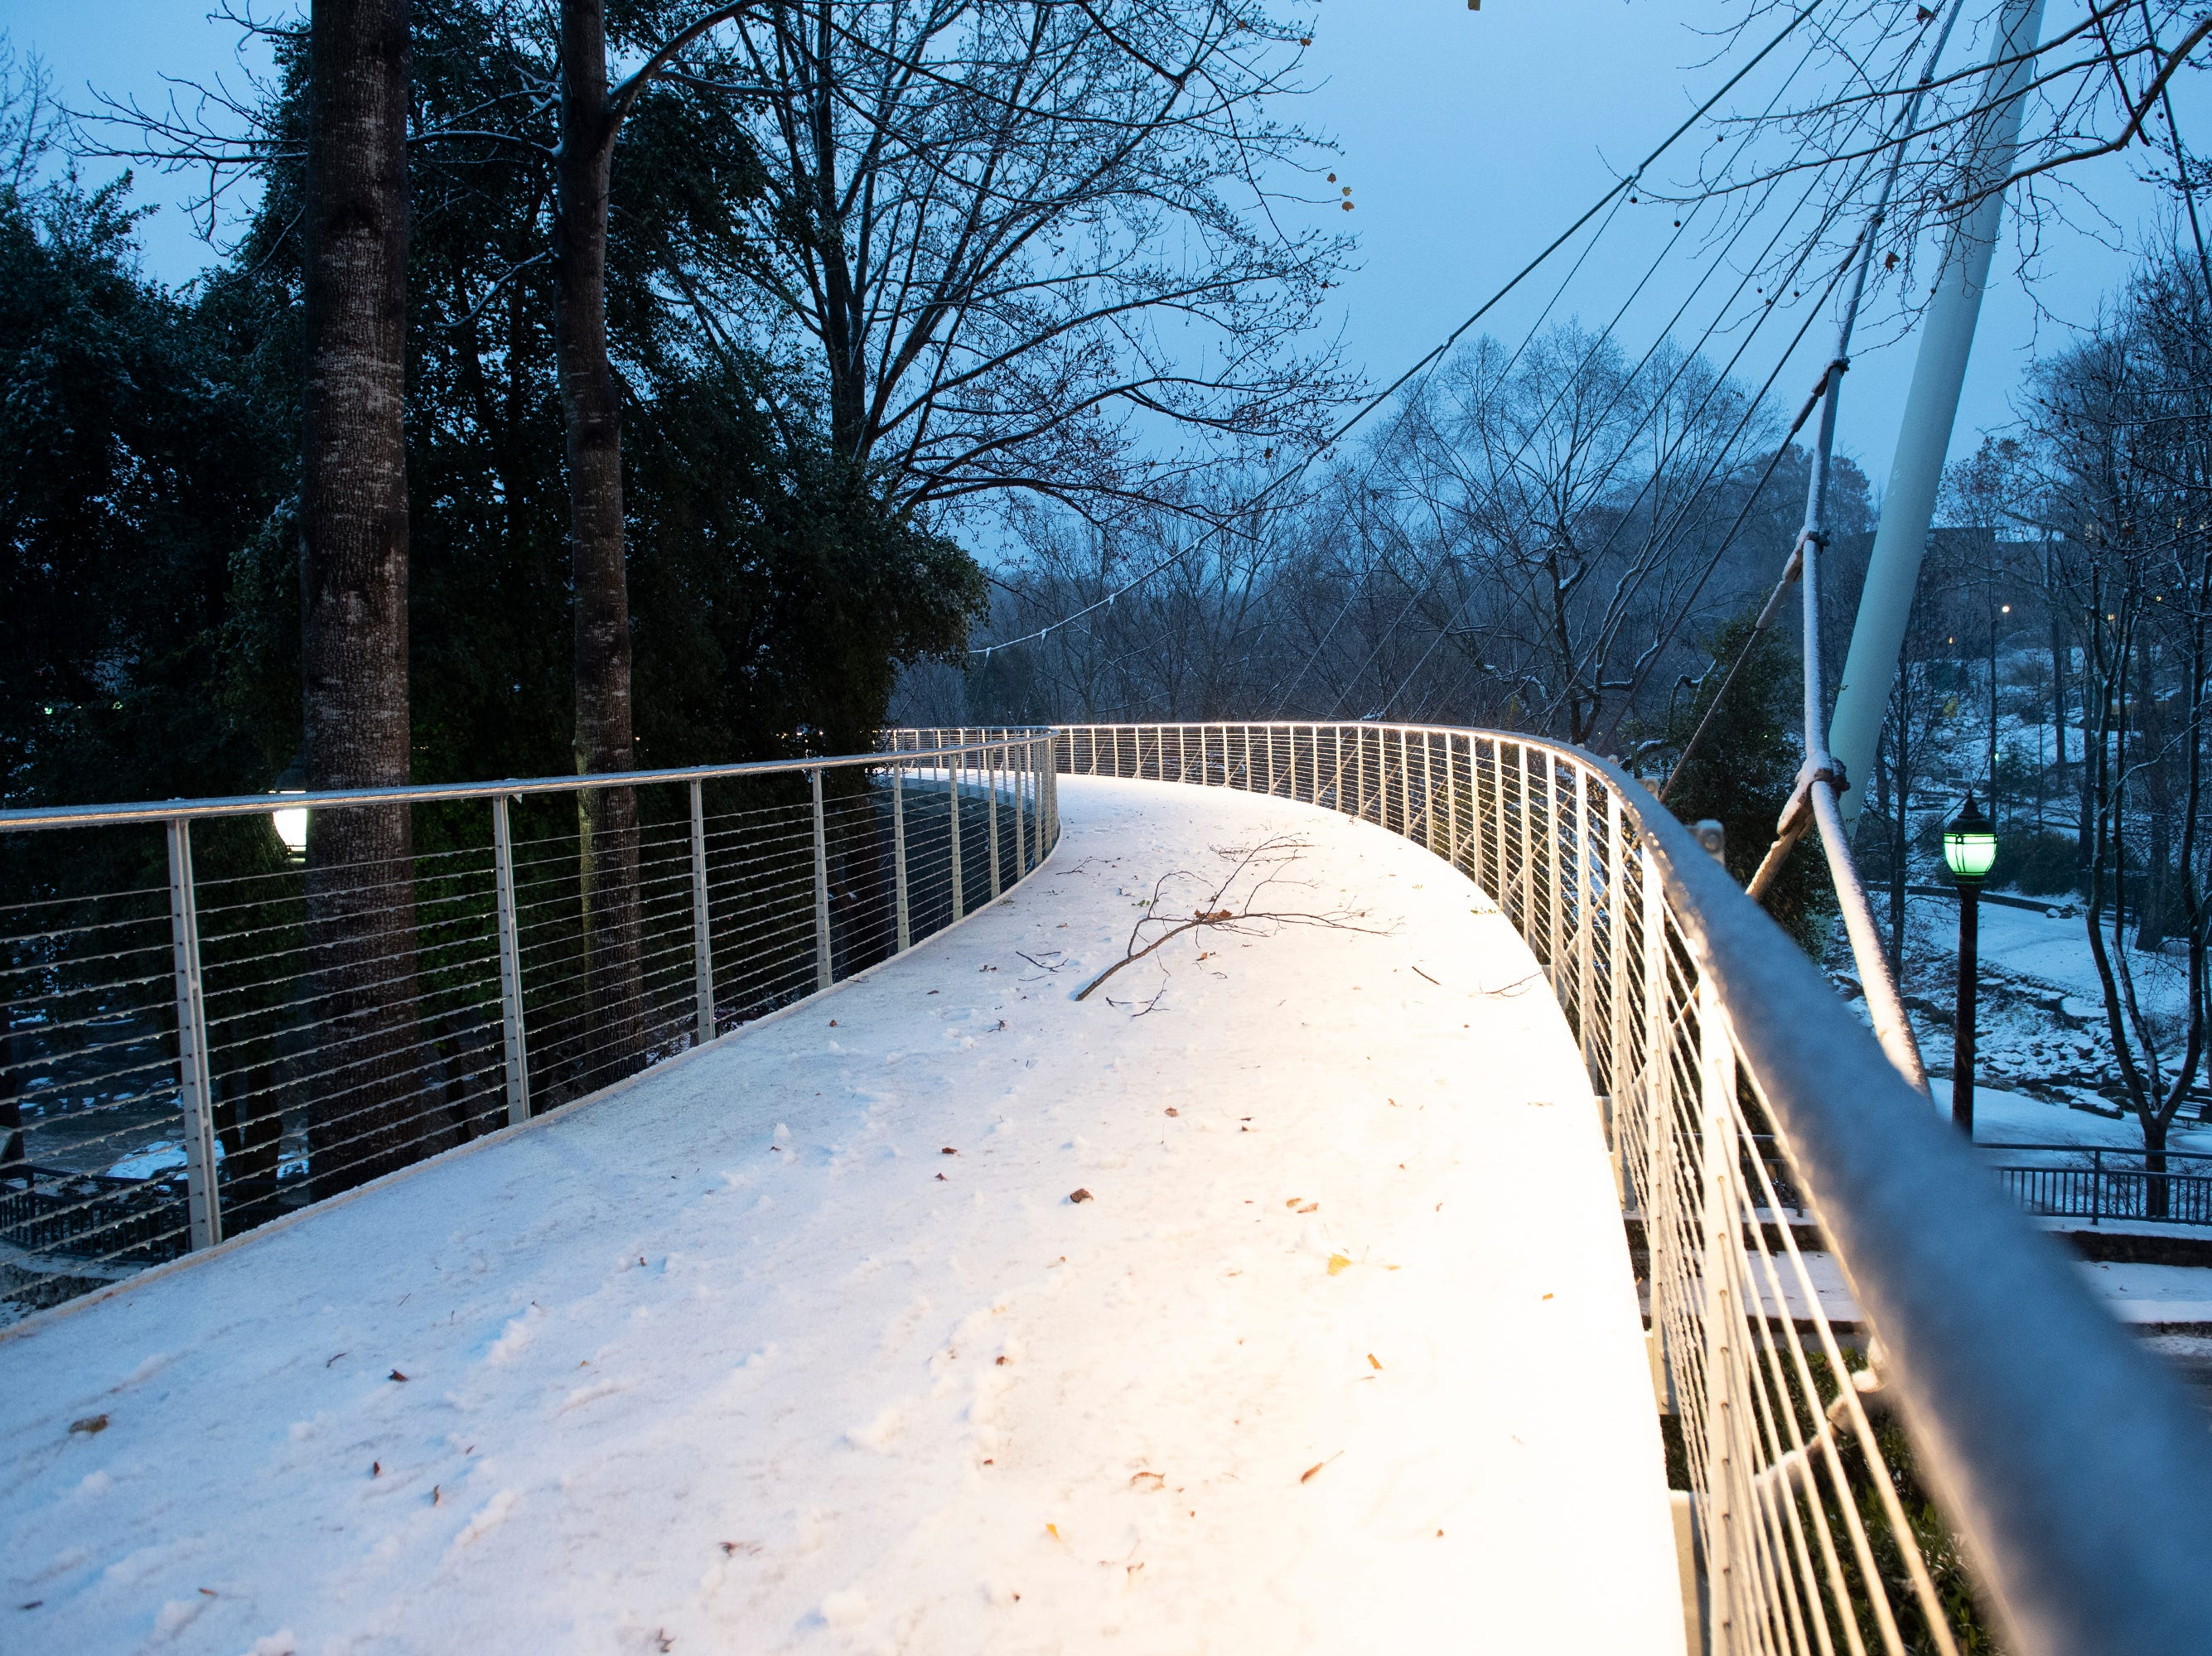 Snow covers a bridge at Falls Park on the Reddy as an icy mix falls Sunday, Dec. 09, 2018.